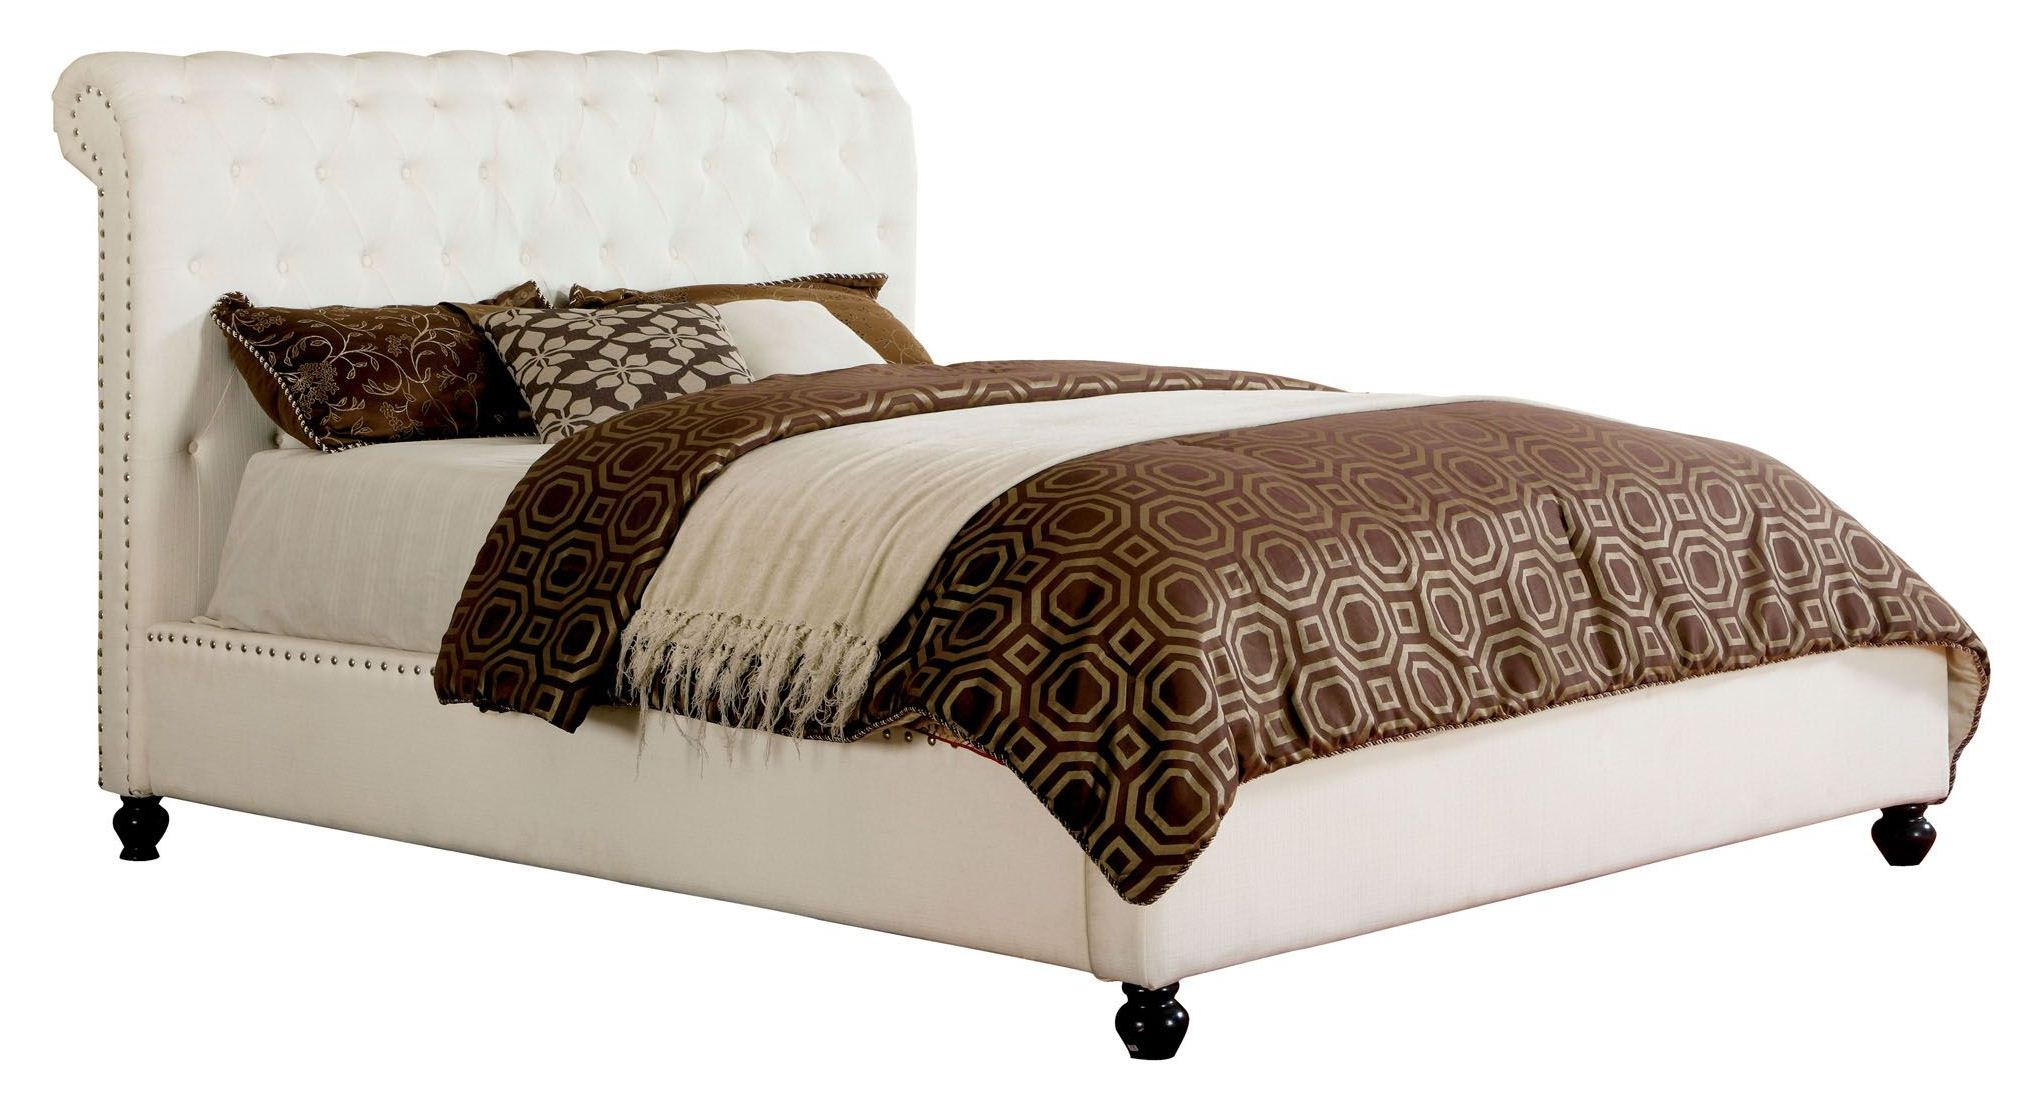 Bennett white queen platform bed from furniture of america for 1 bed